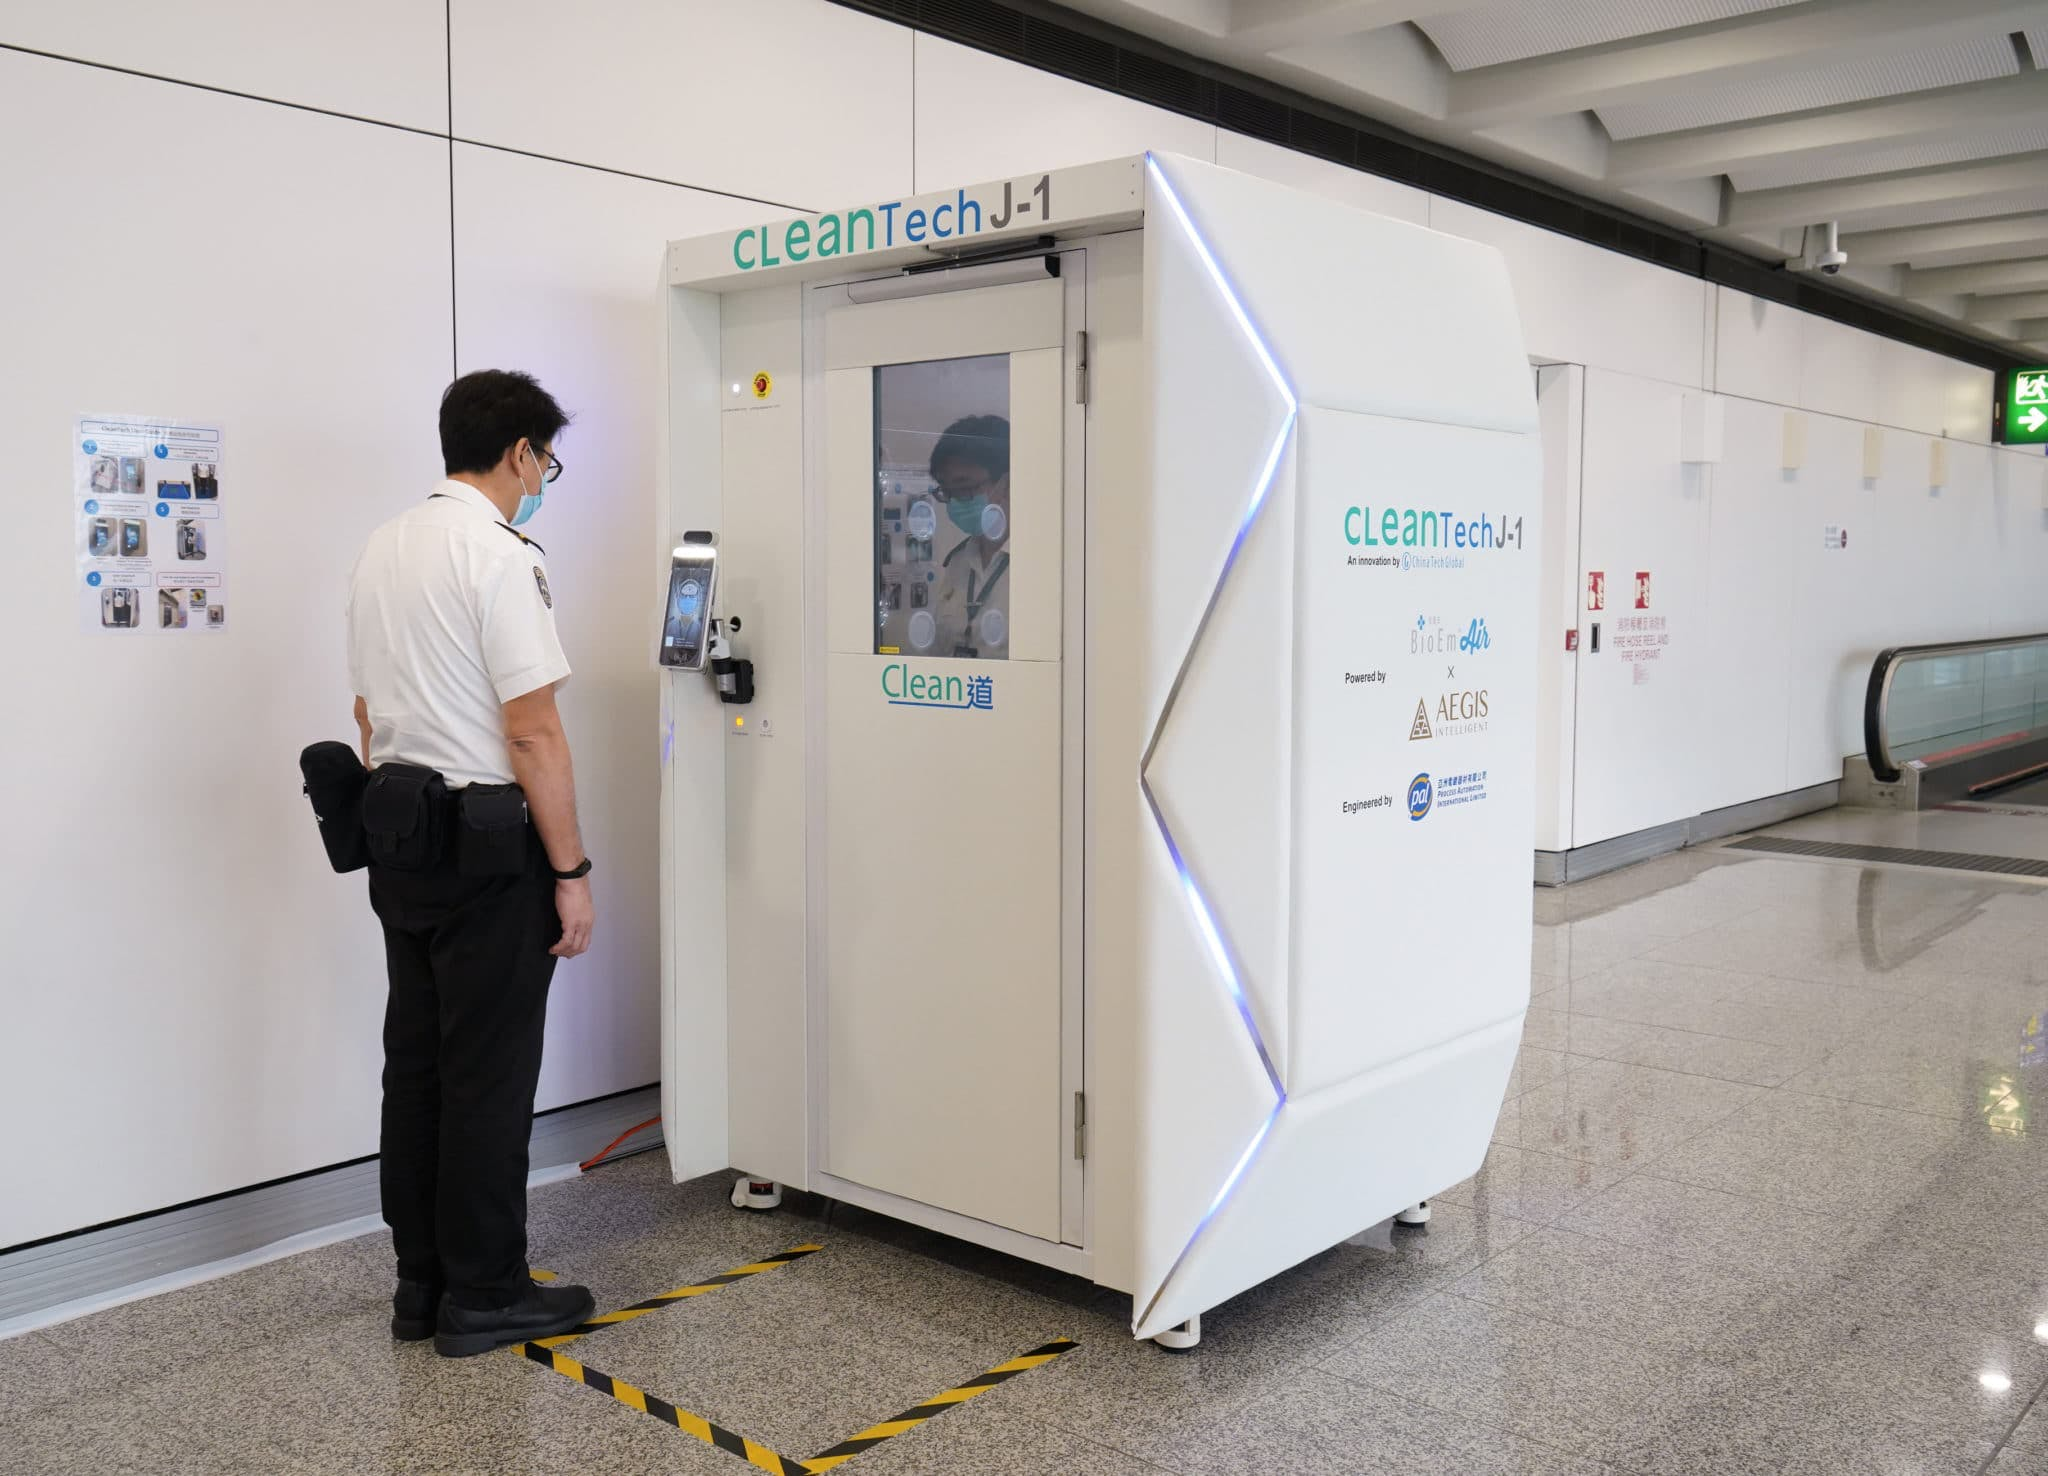 CleanTech robot for disinfecting passengers